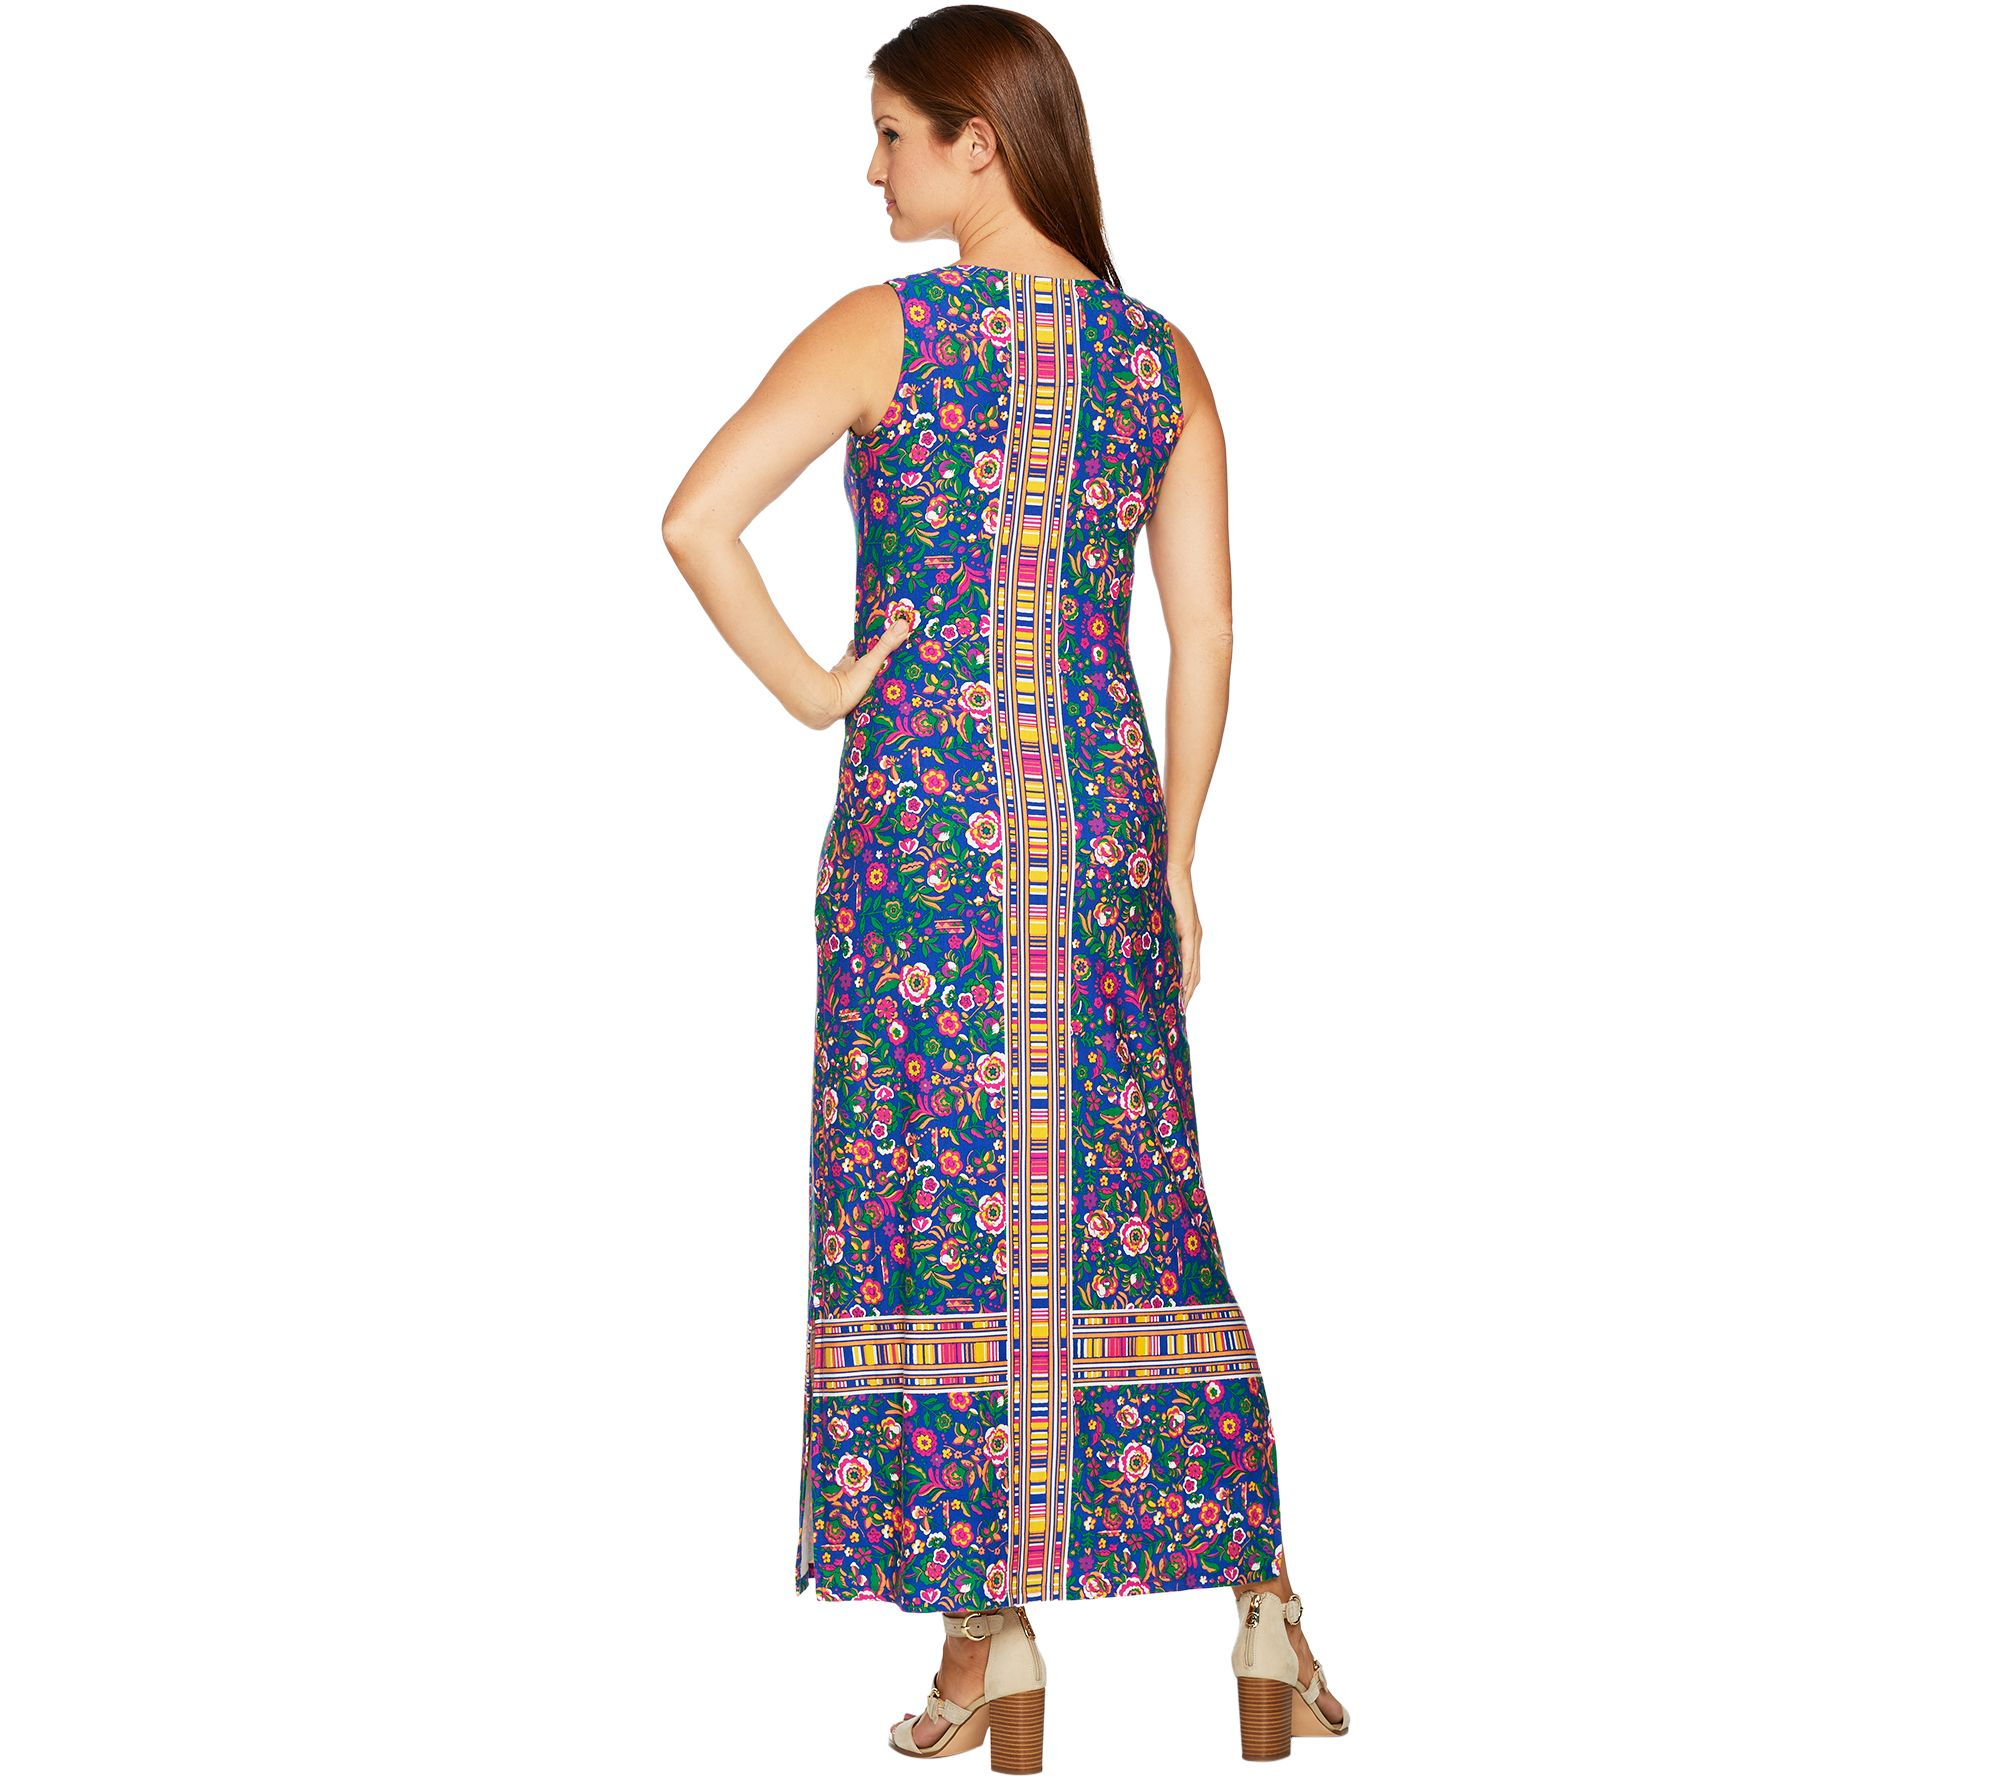 df45ed064de C. Wonder Petite Knit Engineered Floral Print Knit Maxi Dress - Page 1 — QVC .com